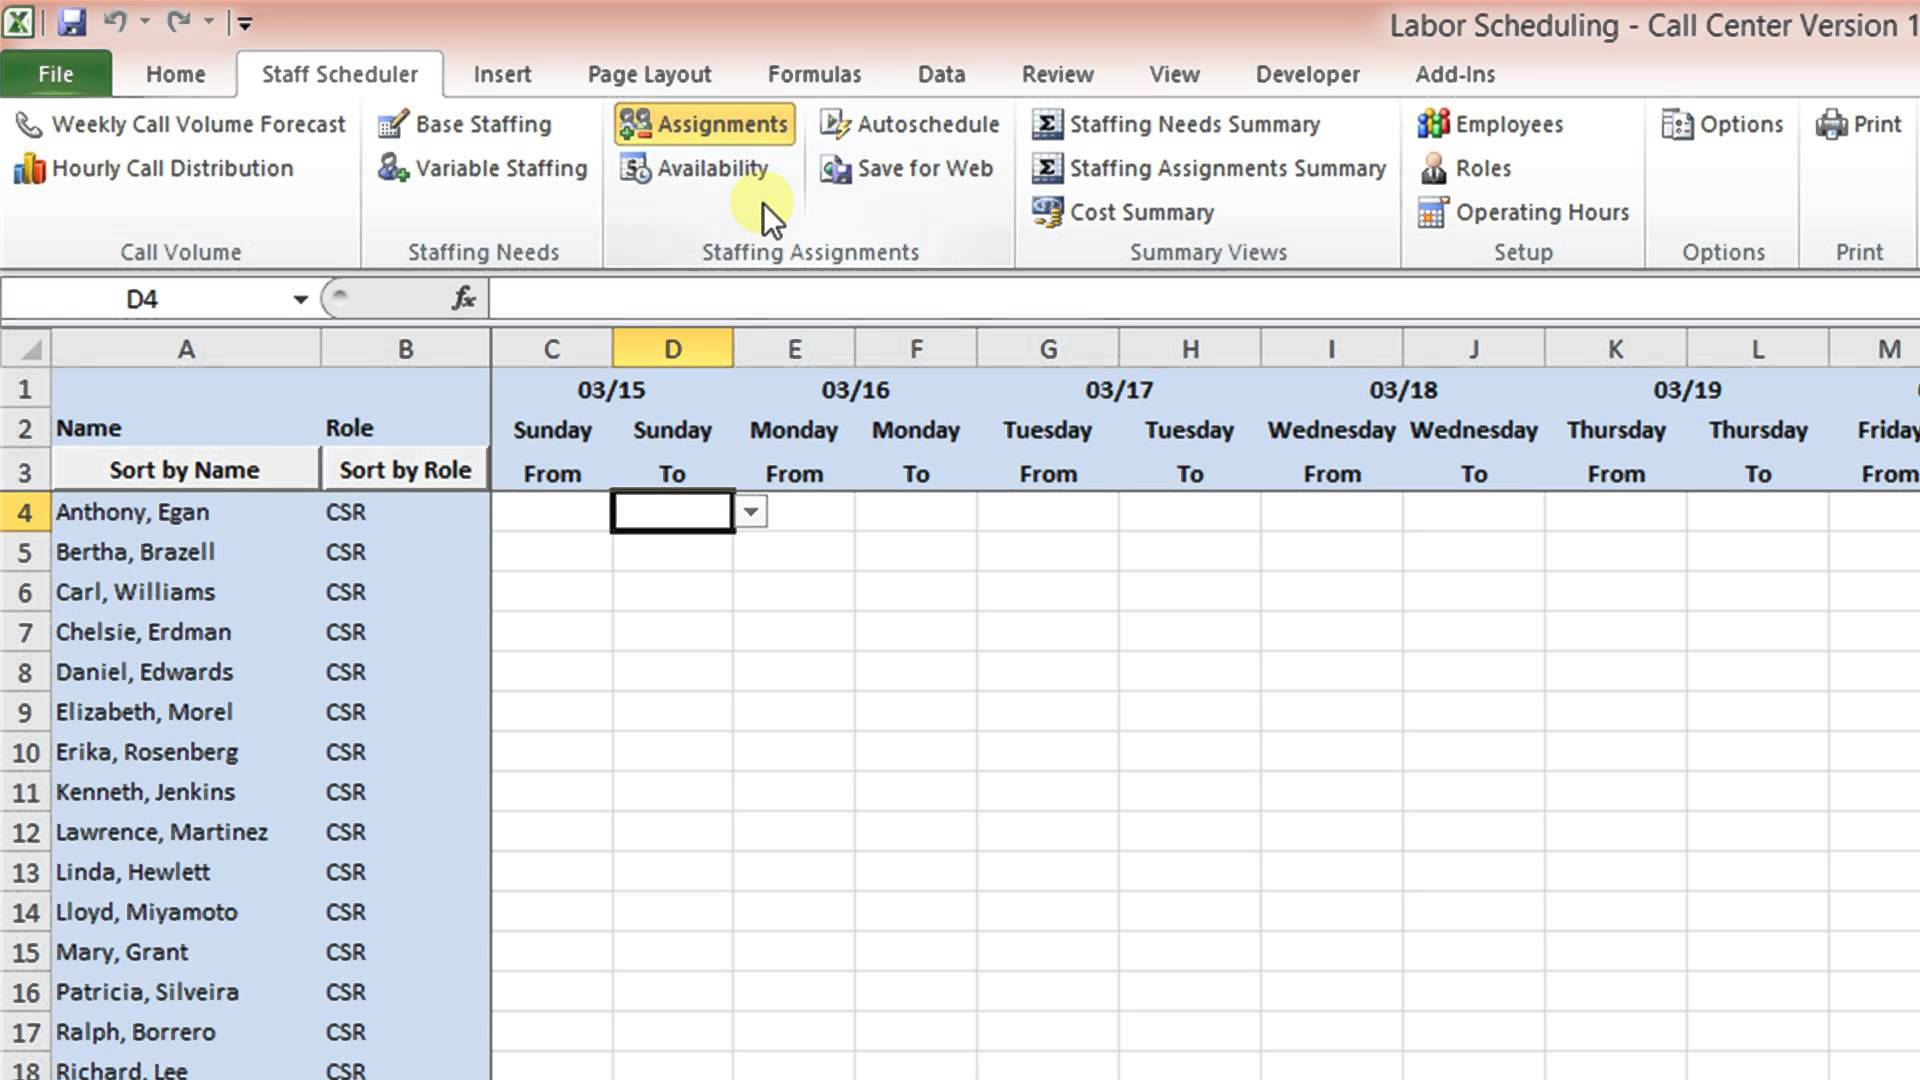 Labor Scheduling Template for Excel Call Center Version Overview